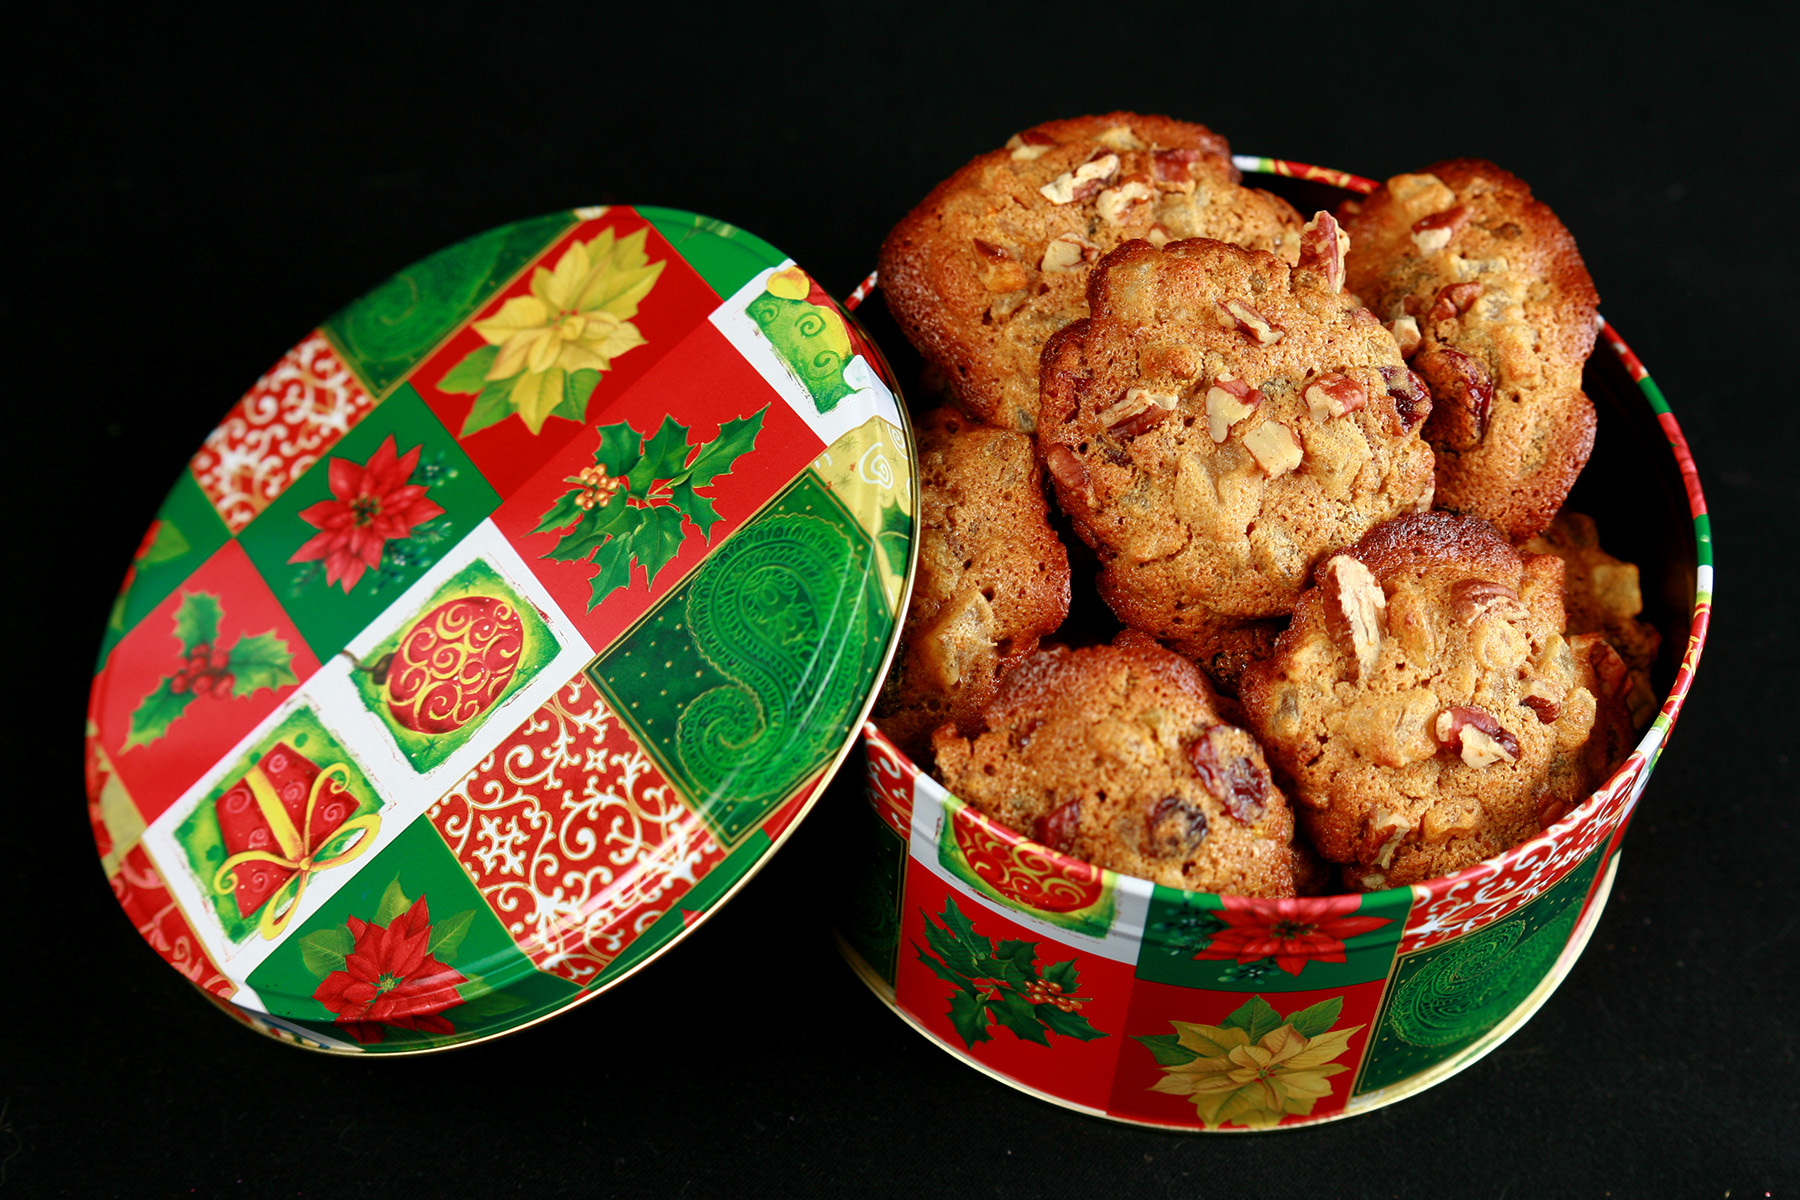 A festive green and red holiday container is full of cookies. The cookies have visible pieces of fruits and nuts throughout.